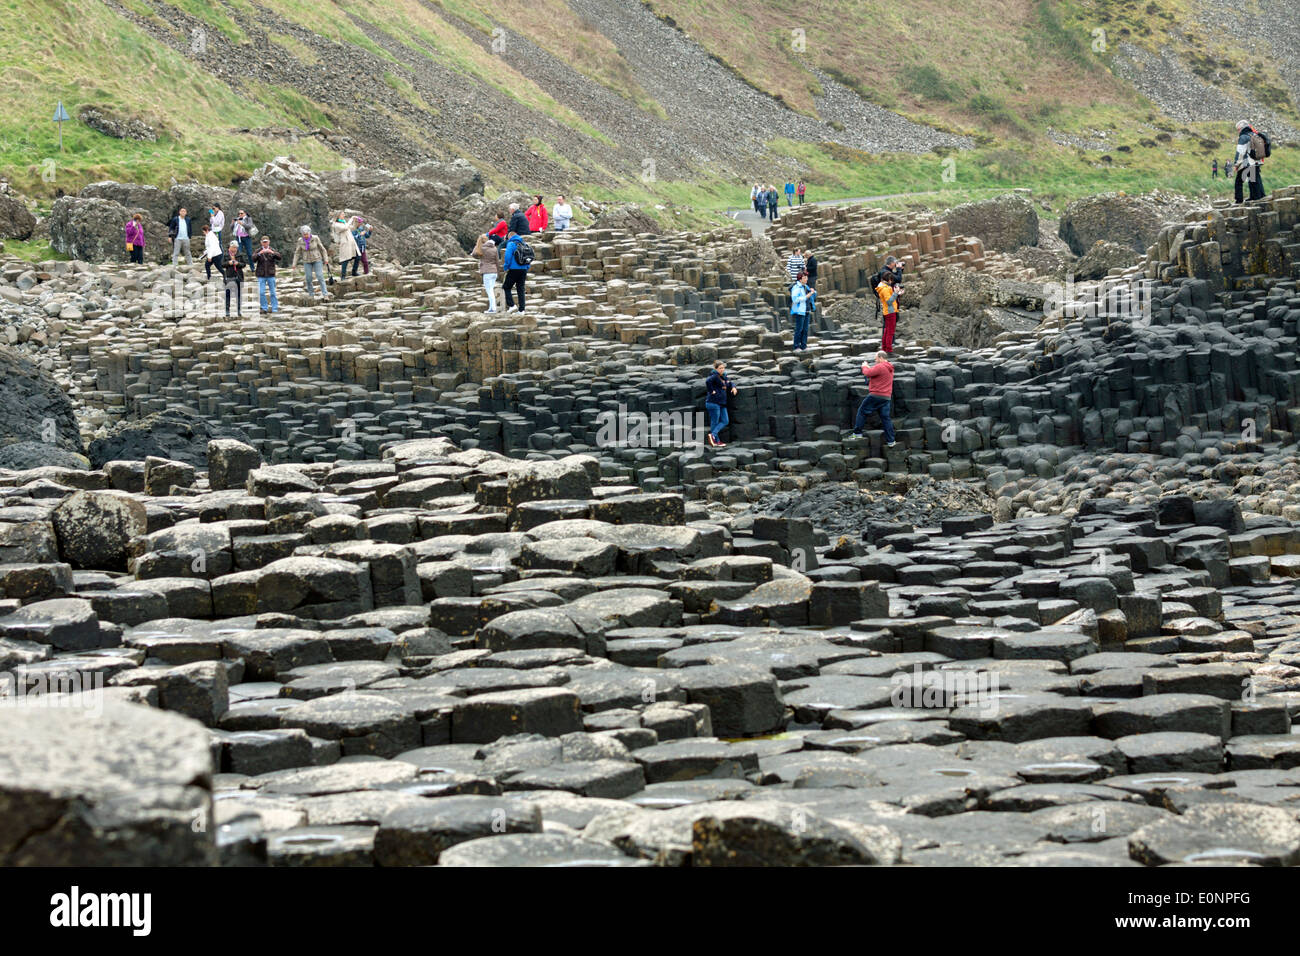 Tourists exploring the Giant's Causeway, County Antrim, Northern Ireland, UK, a famous UNESCO World Heritage Site. - Stock Image